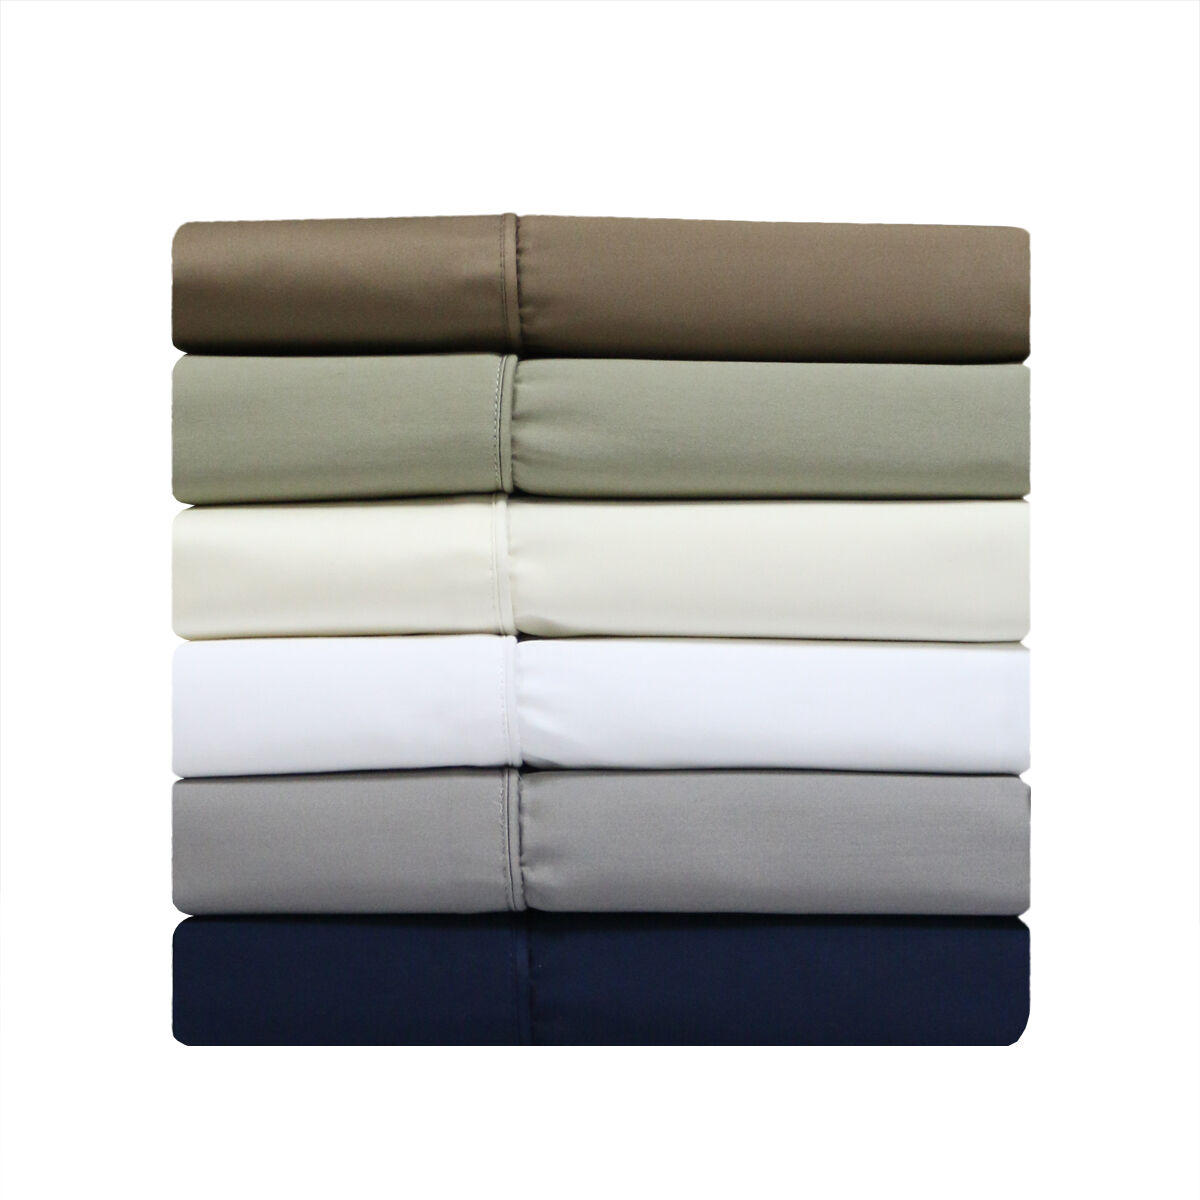 Split Top King Sheets 300 Thread Count 100% Cotton (Half Split Fitted)